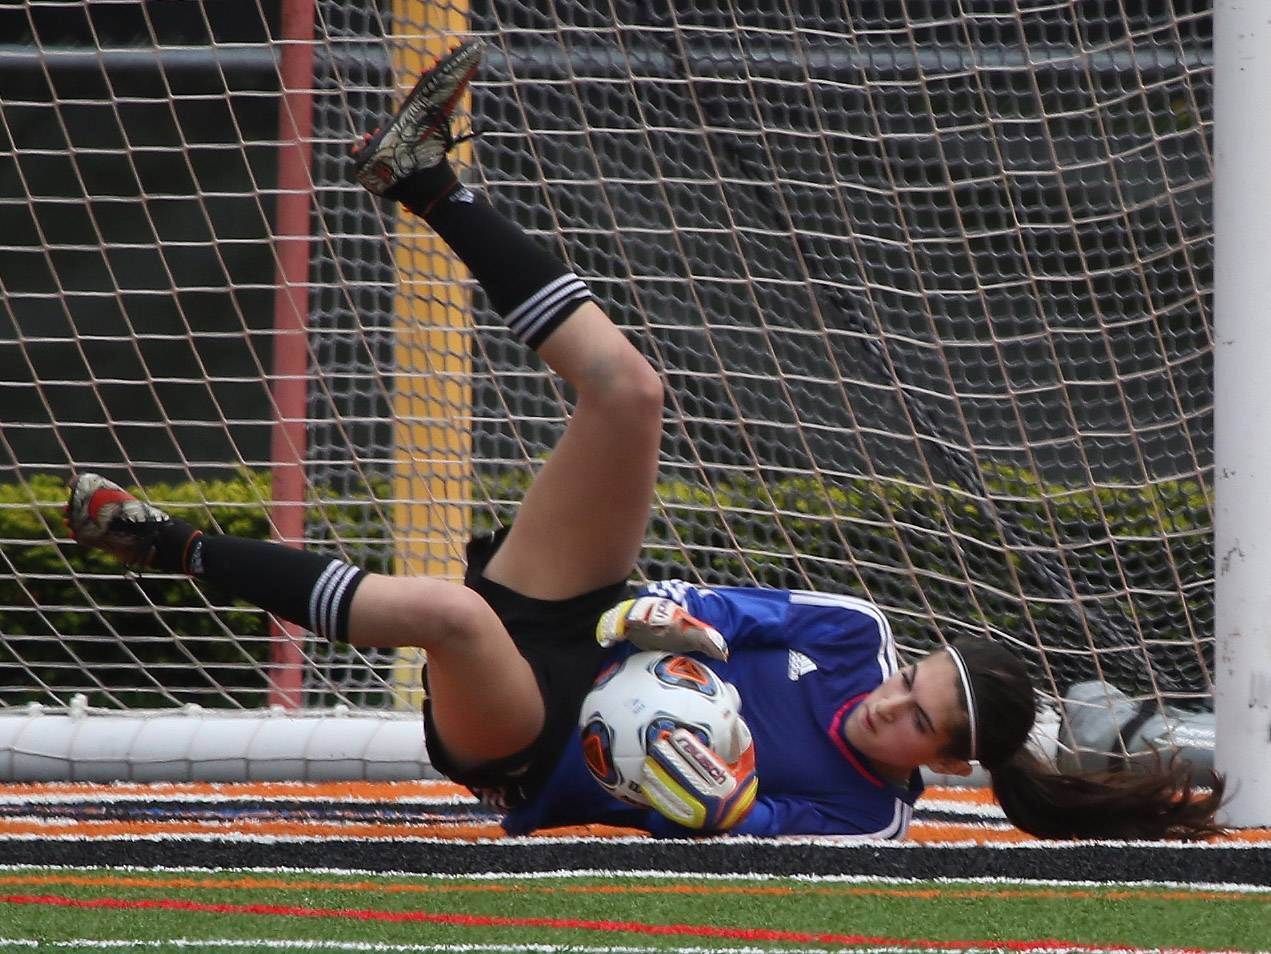 Carmel goalie Sophia Sarkis dives to stop a shot on goal against Palatine in Class 3A sectional semifinal play Tuesday in Libertyville.